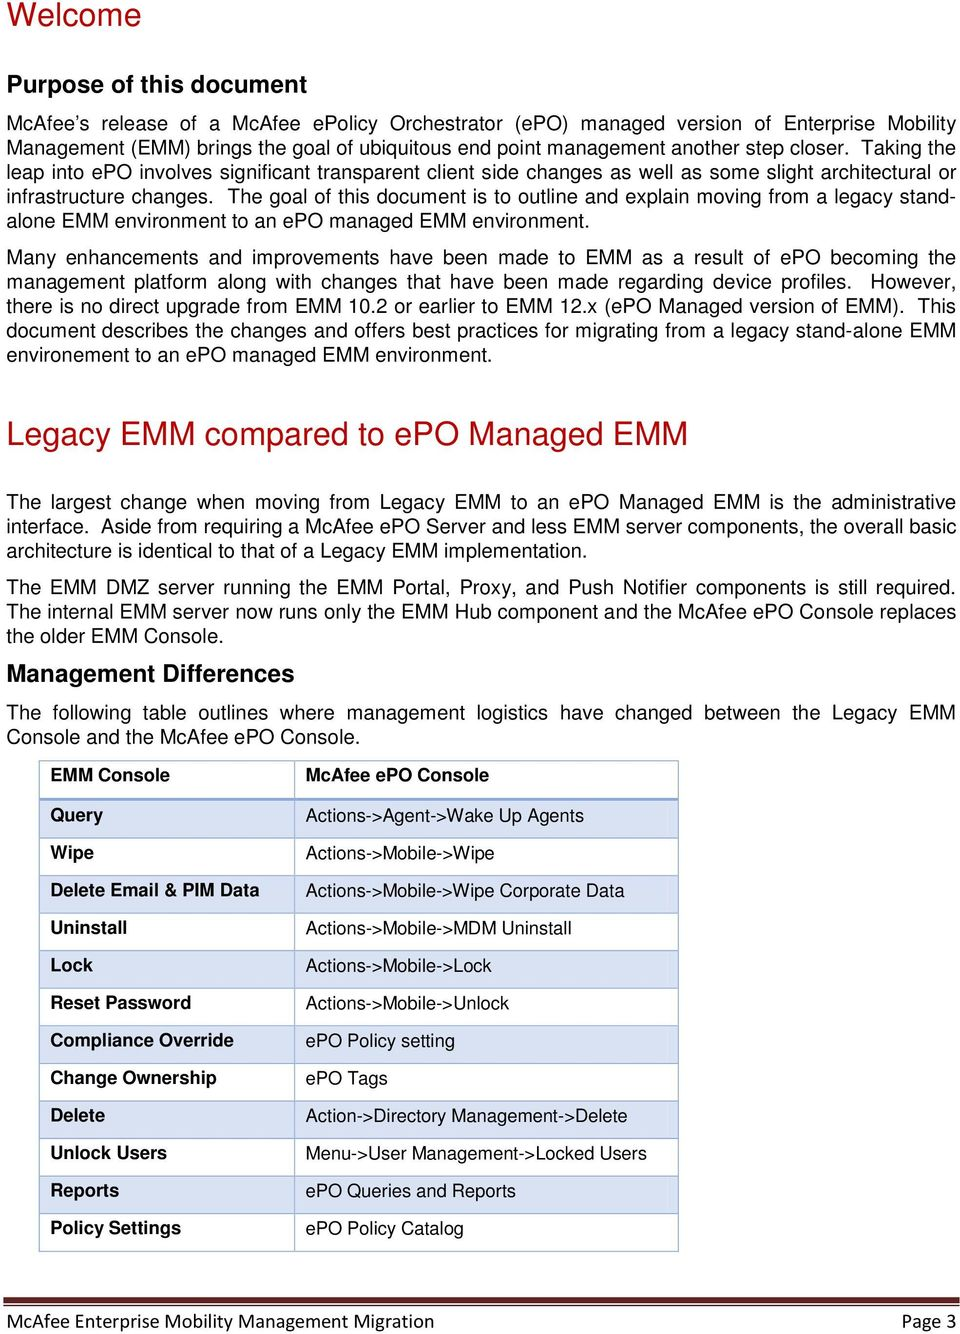 The goal of this document is to outline and explain moving from a legacy standalone EMM environment to an epo managed EMM environment.